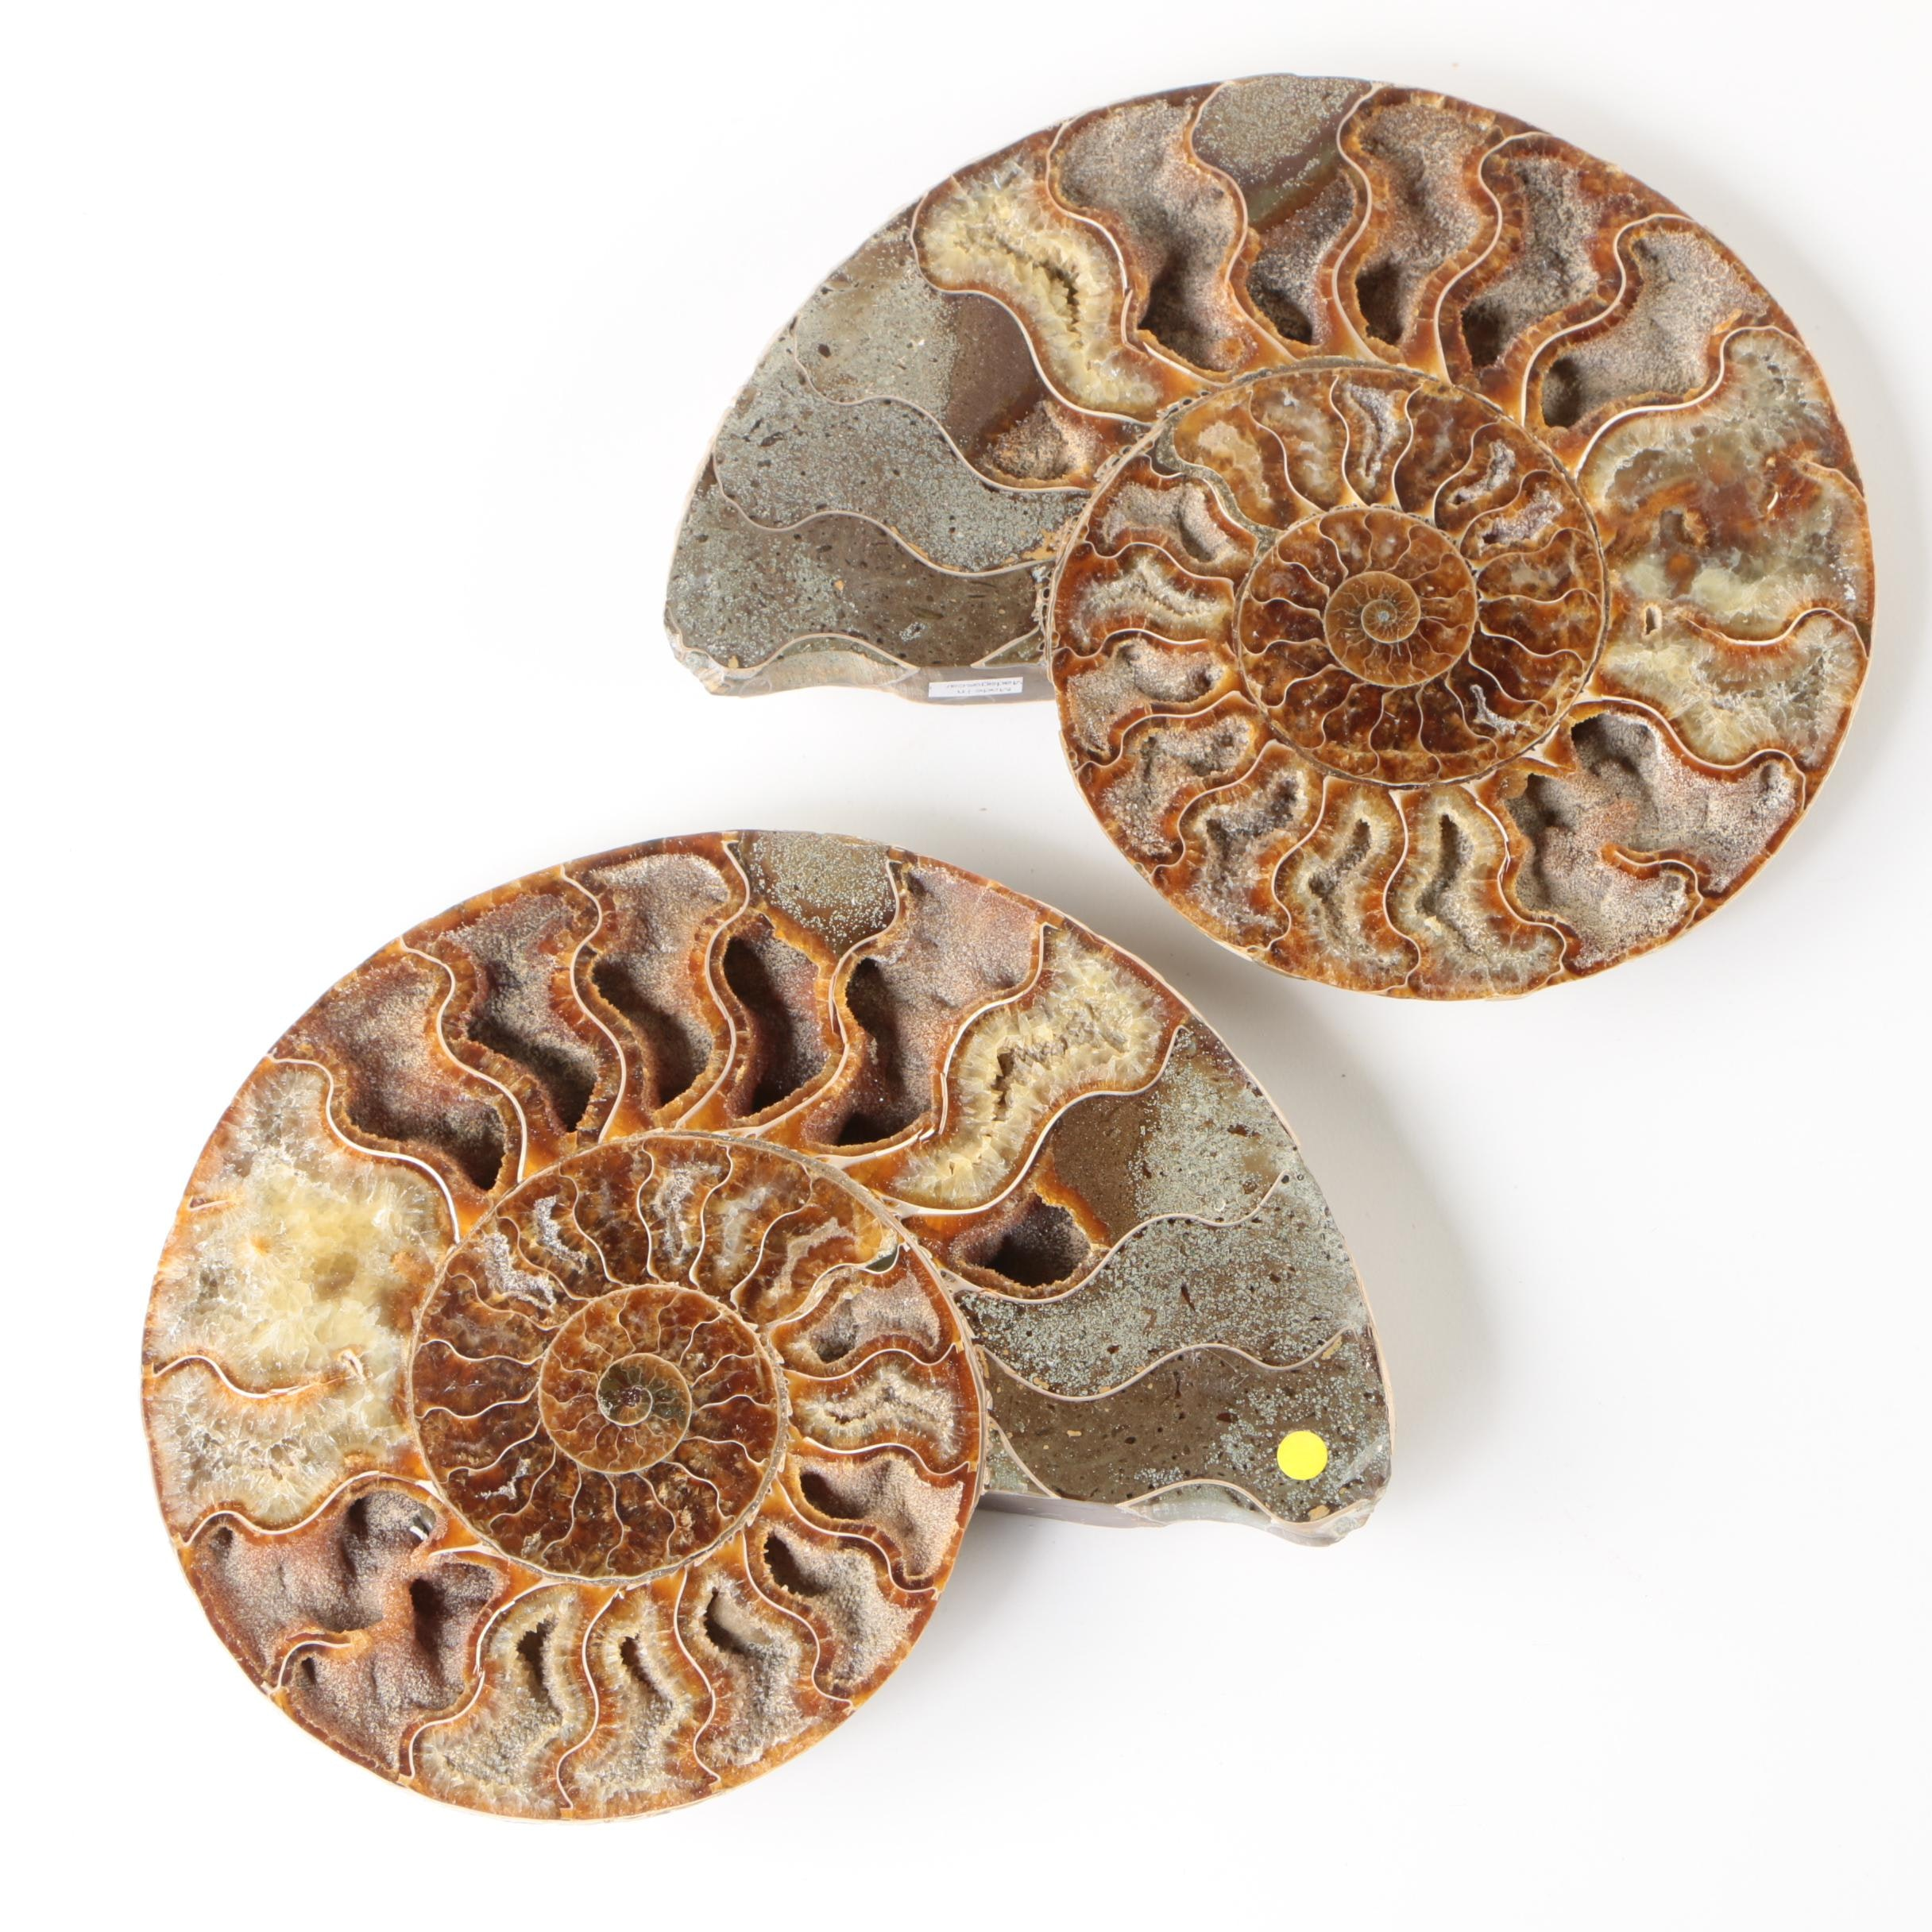 Malagasy Polished Coiled Ammonite Fossil Slices